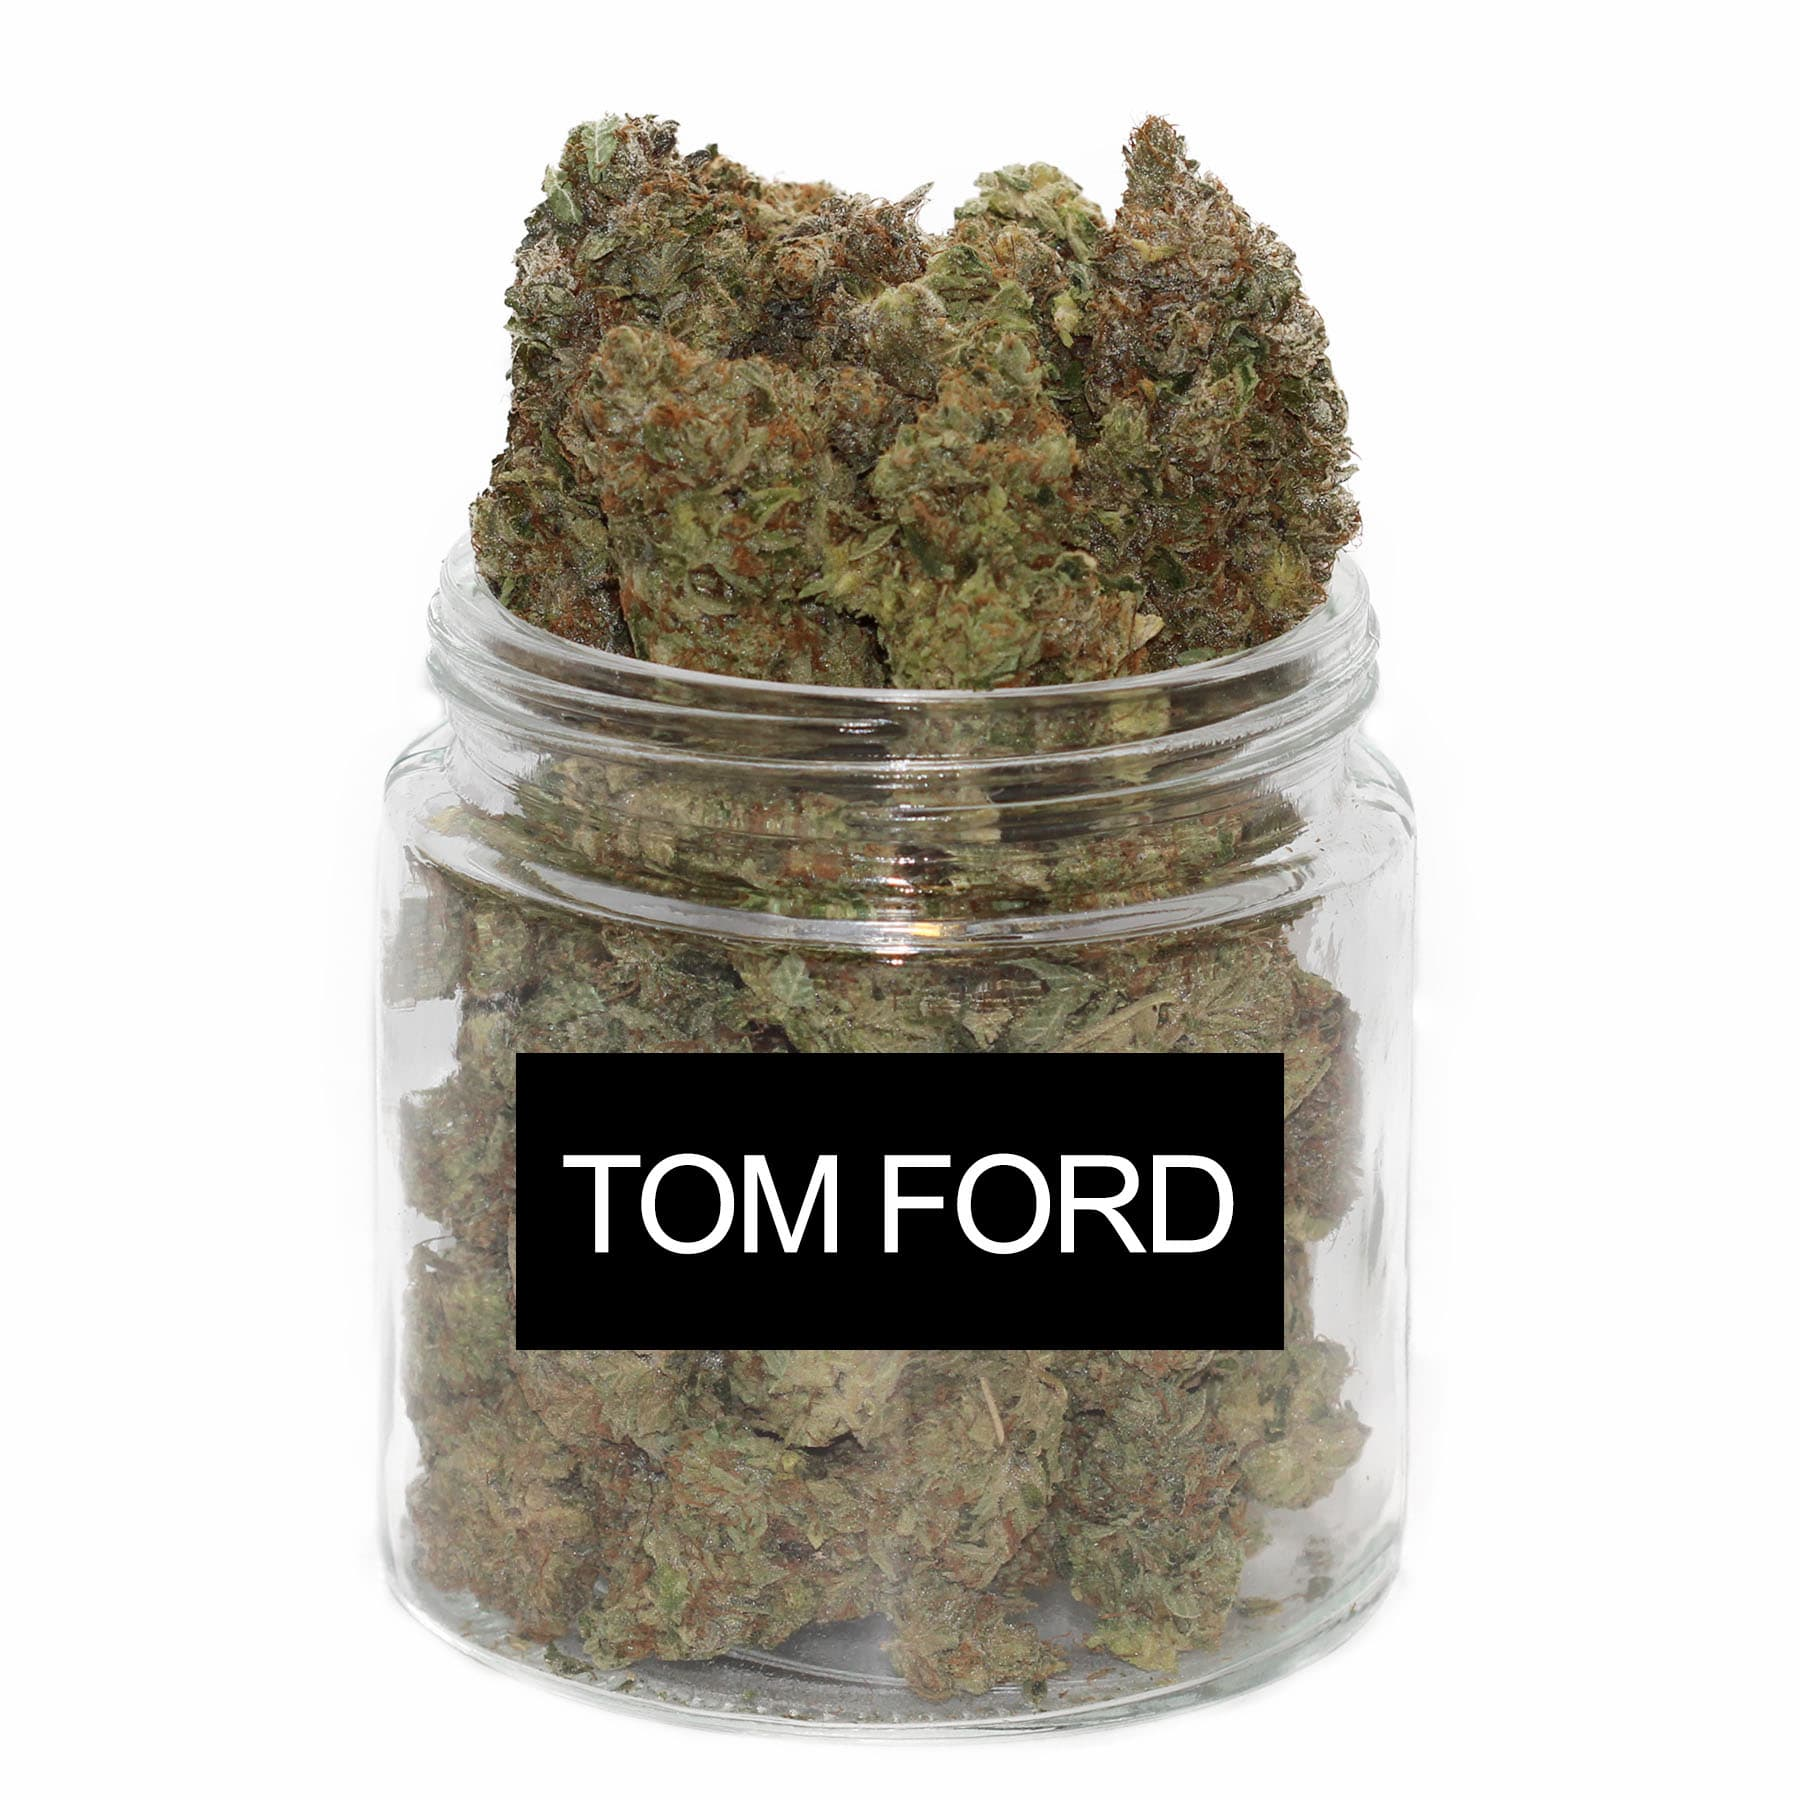 Tom Ford by Get Kush - Image © 2020 Get Kush. All Rights Reserved.